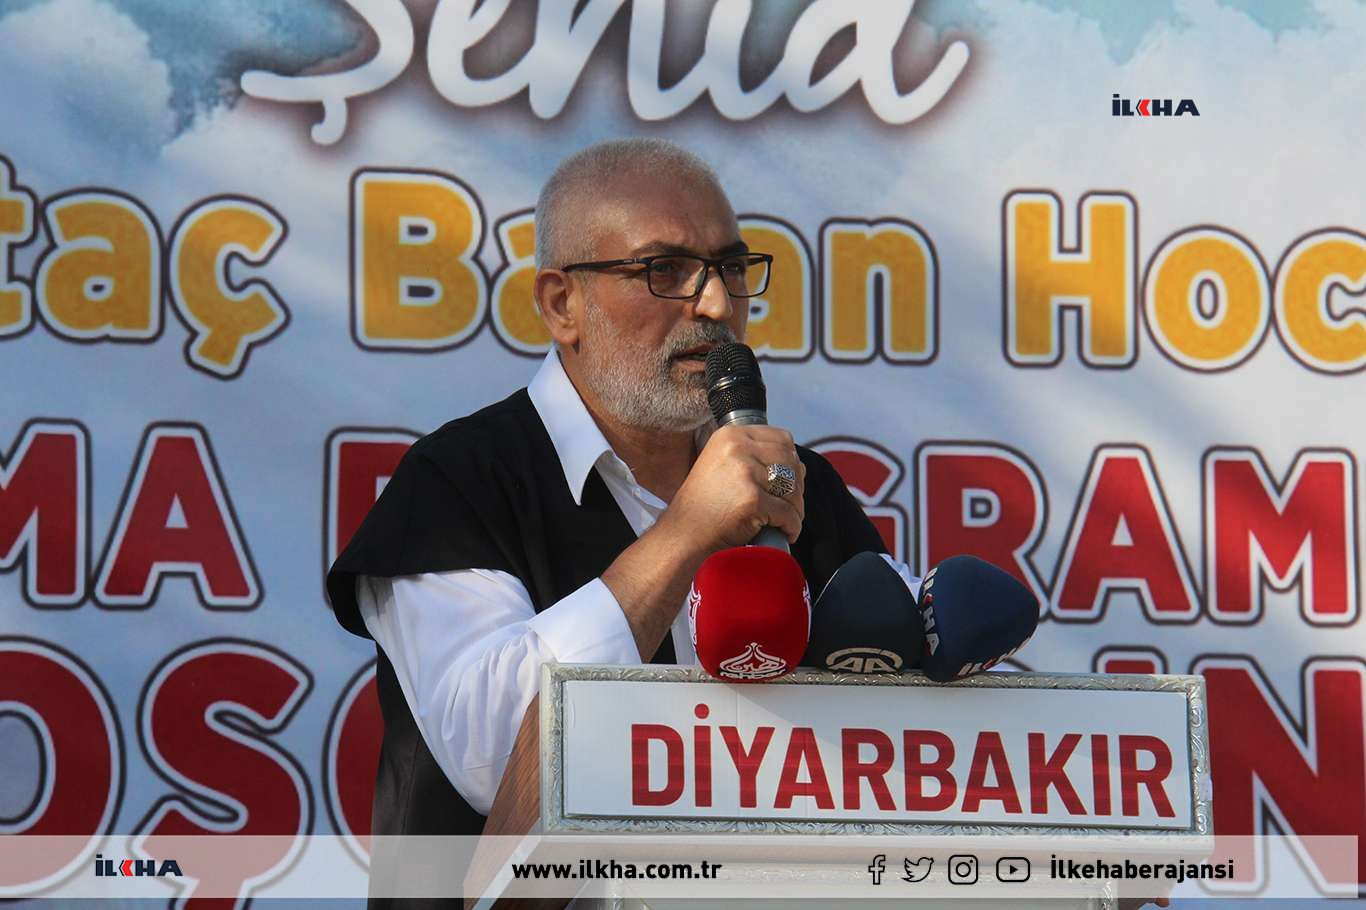 Aytaç Baran commemorated on the 6th anniversary of his martyrdom